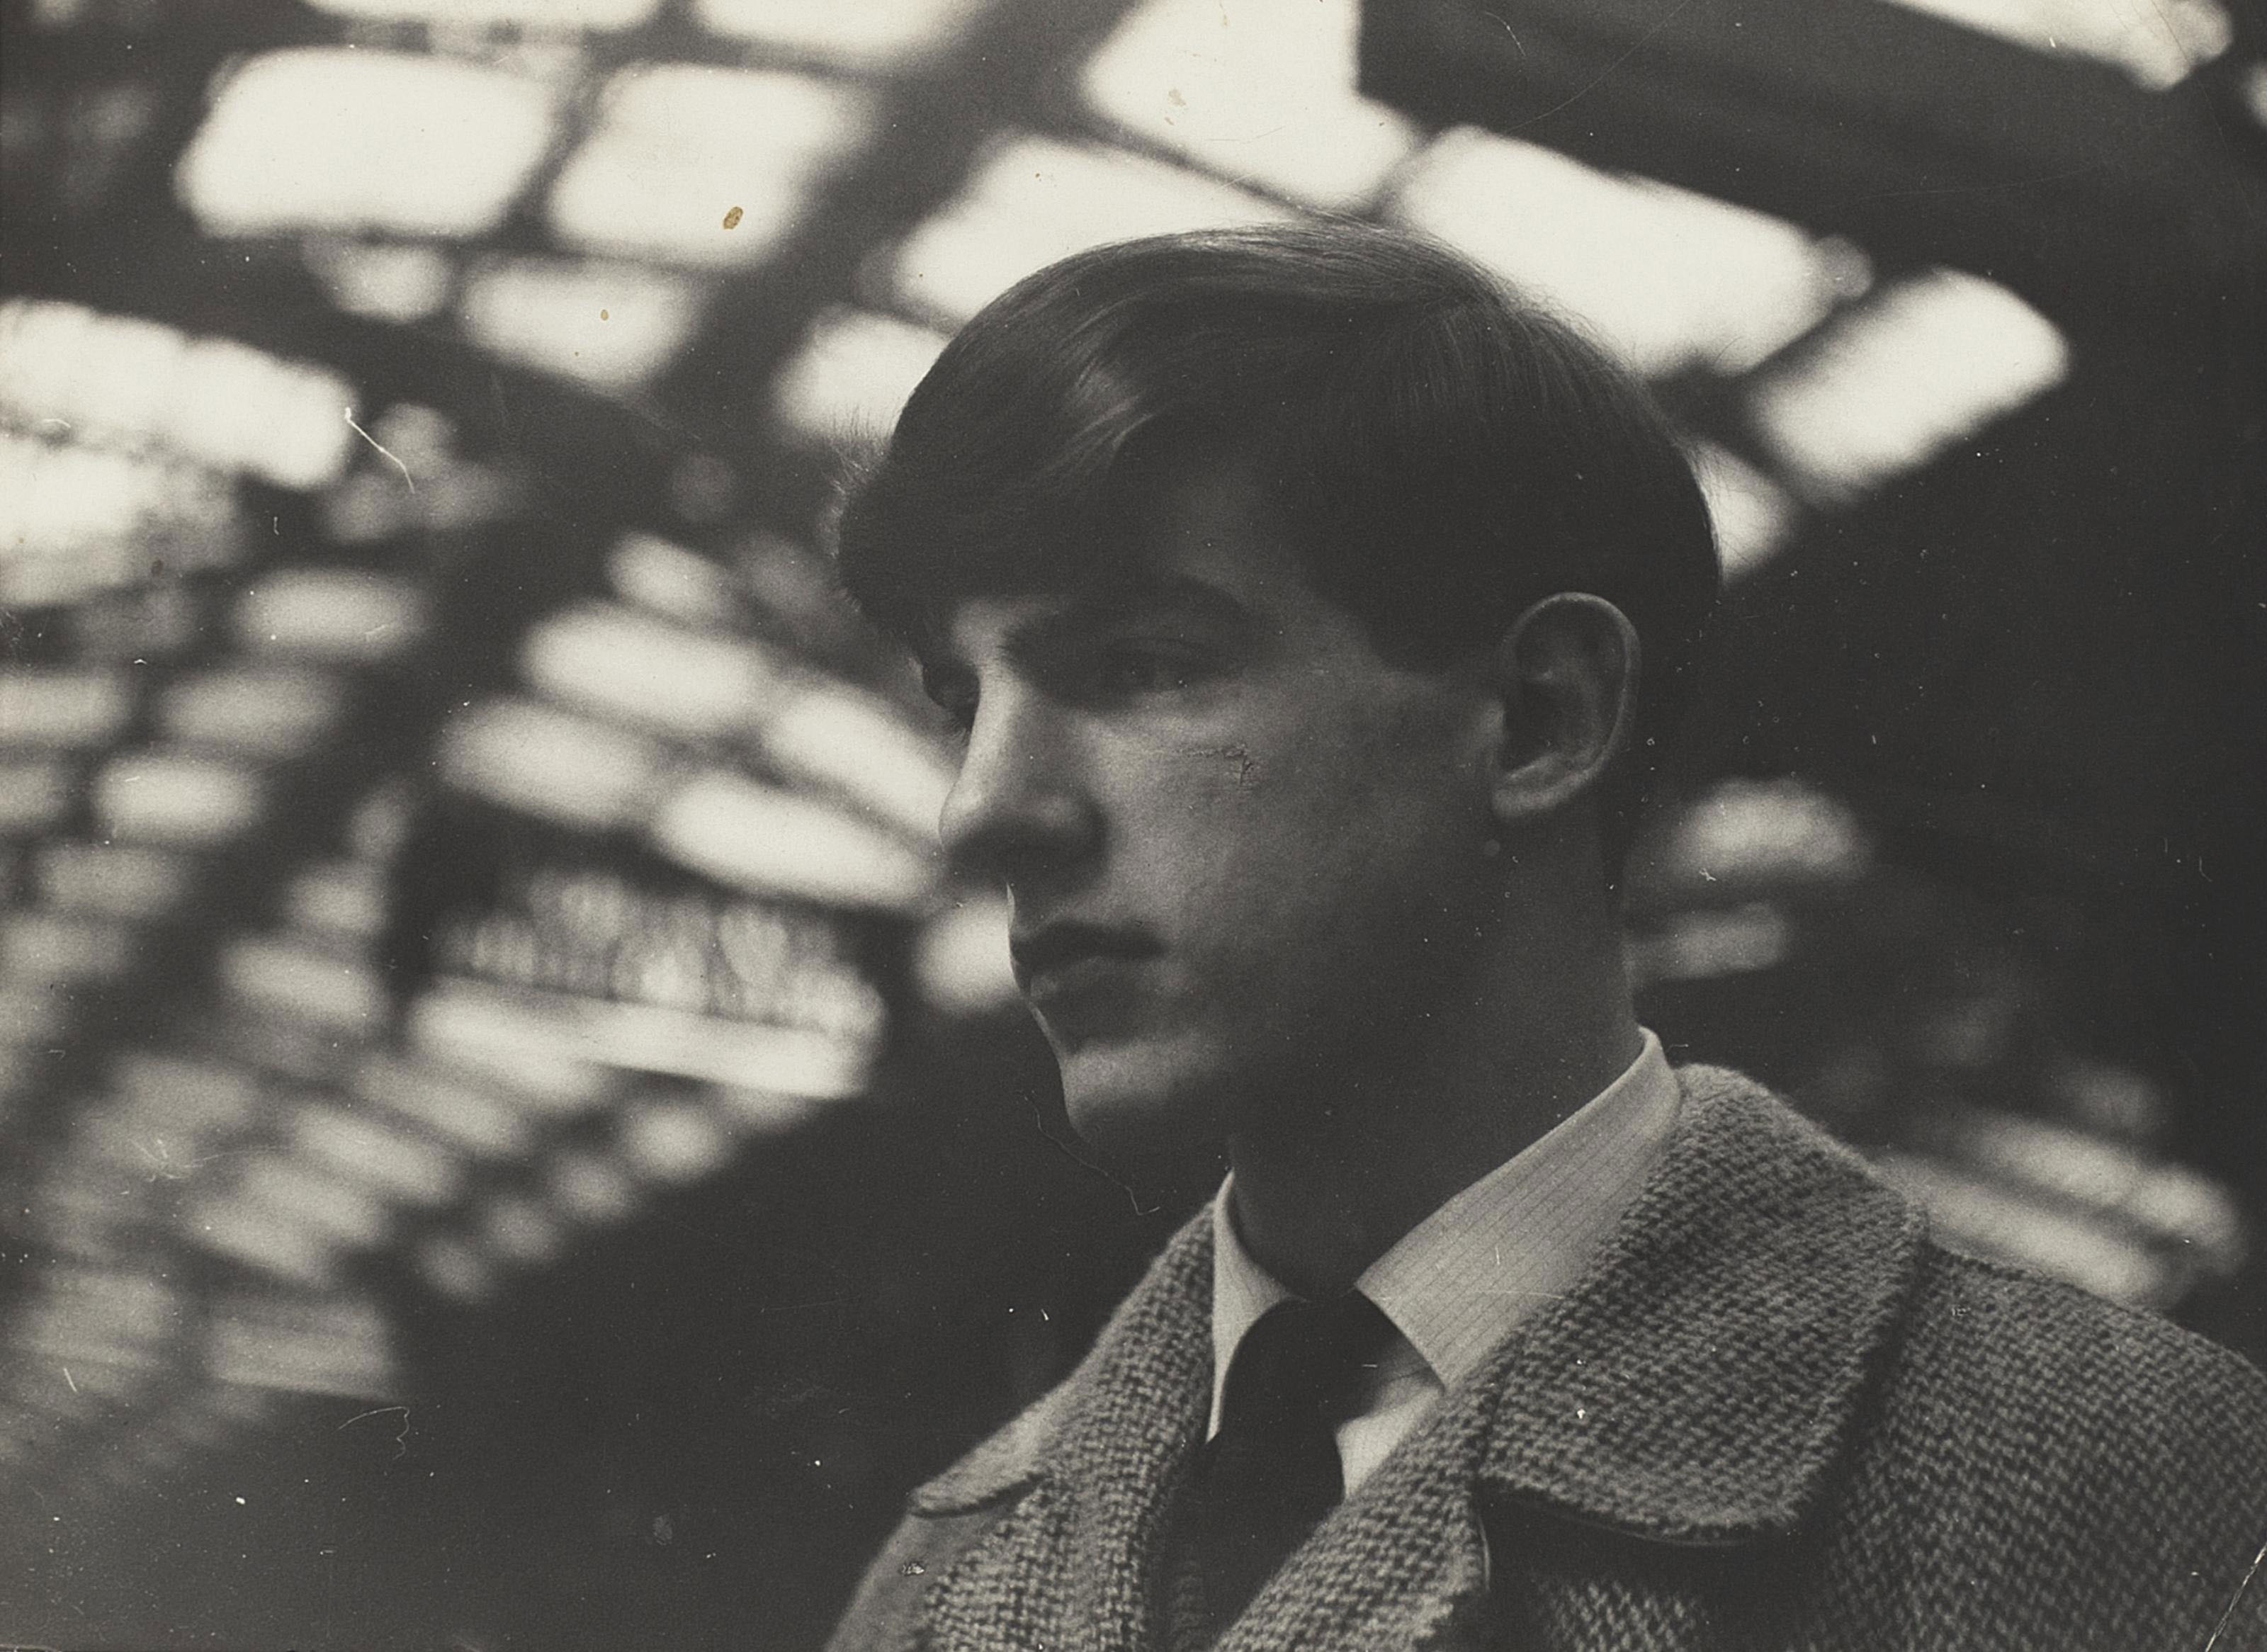 Portrait of Christopher Barker , from the feature 'Bored Teenagers' for About Town magazine, Paddington Station, London, 1962